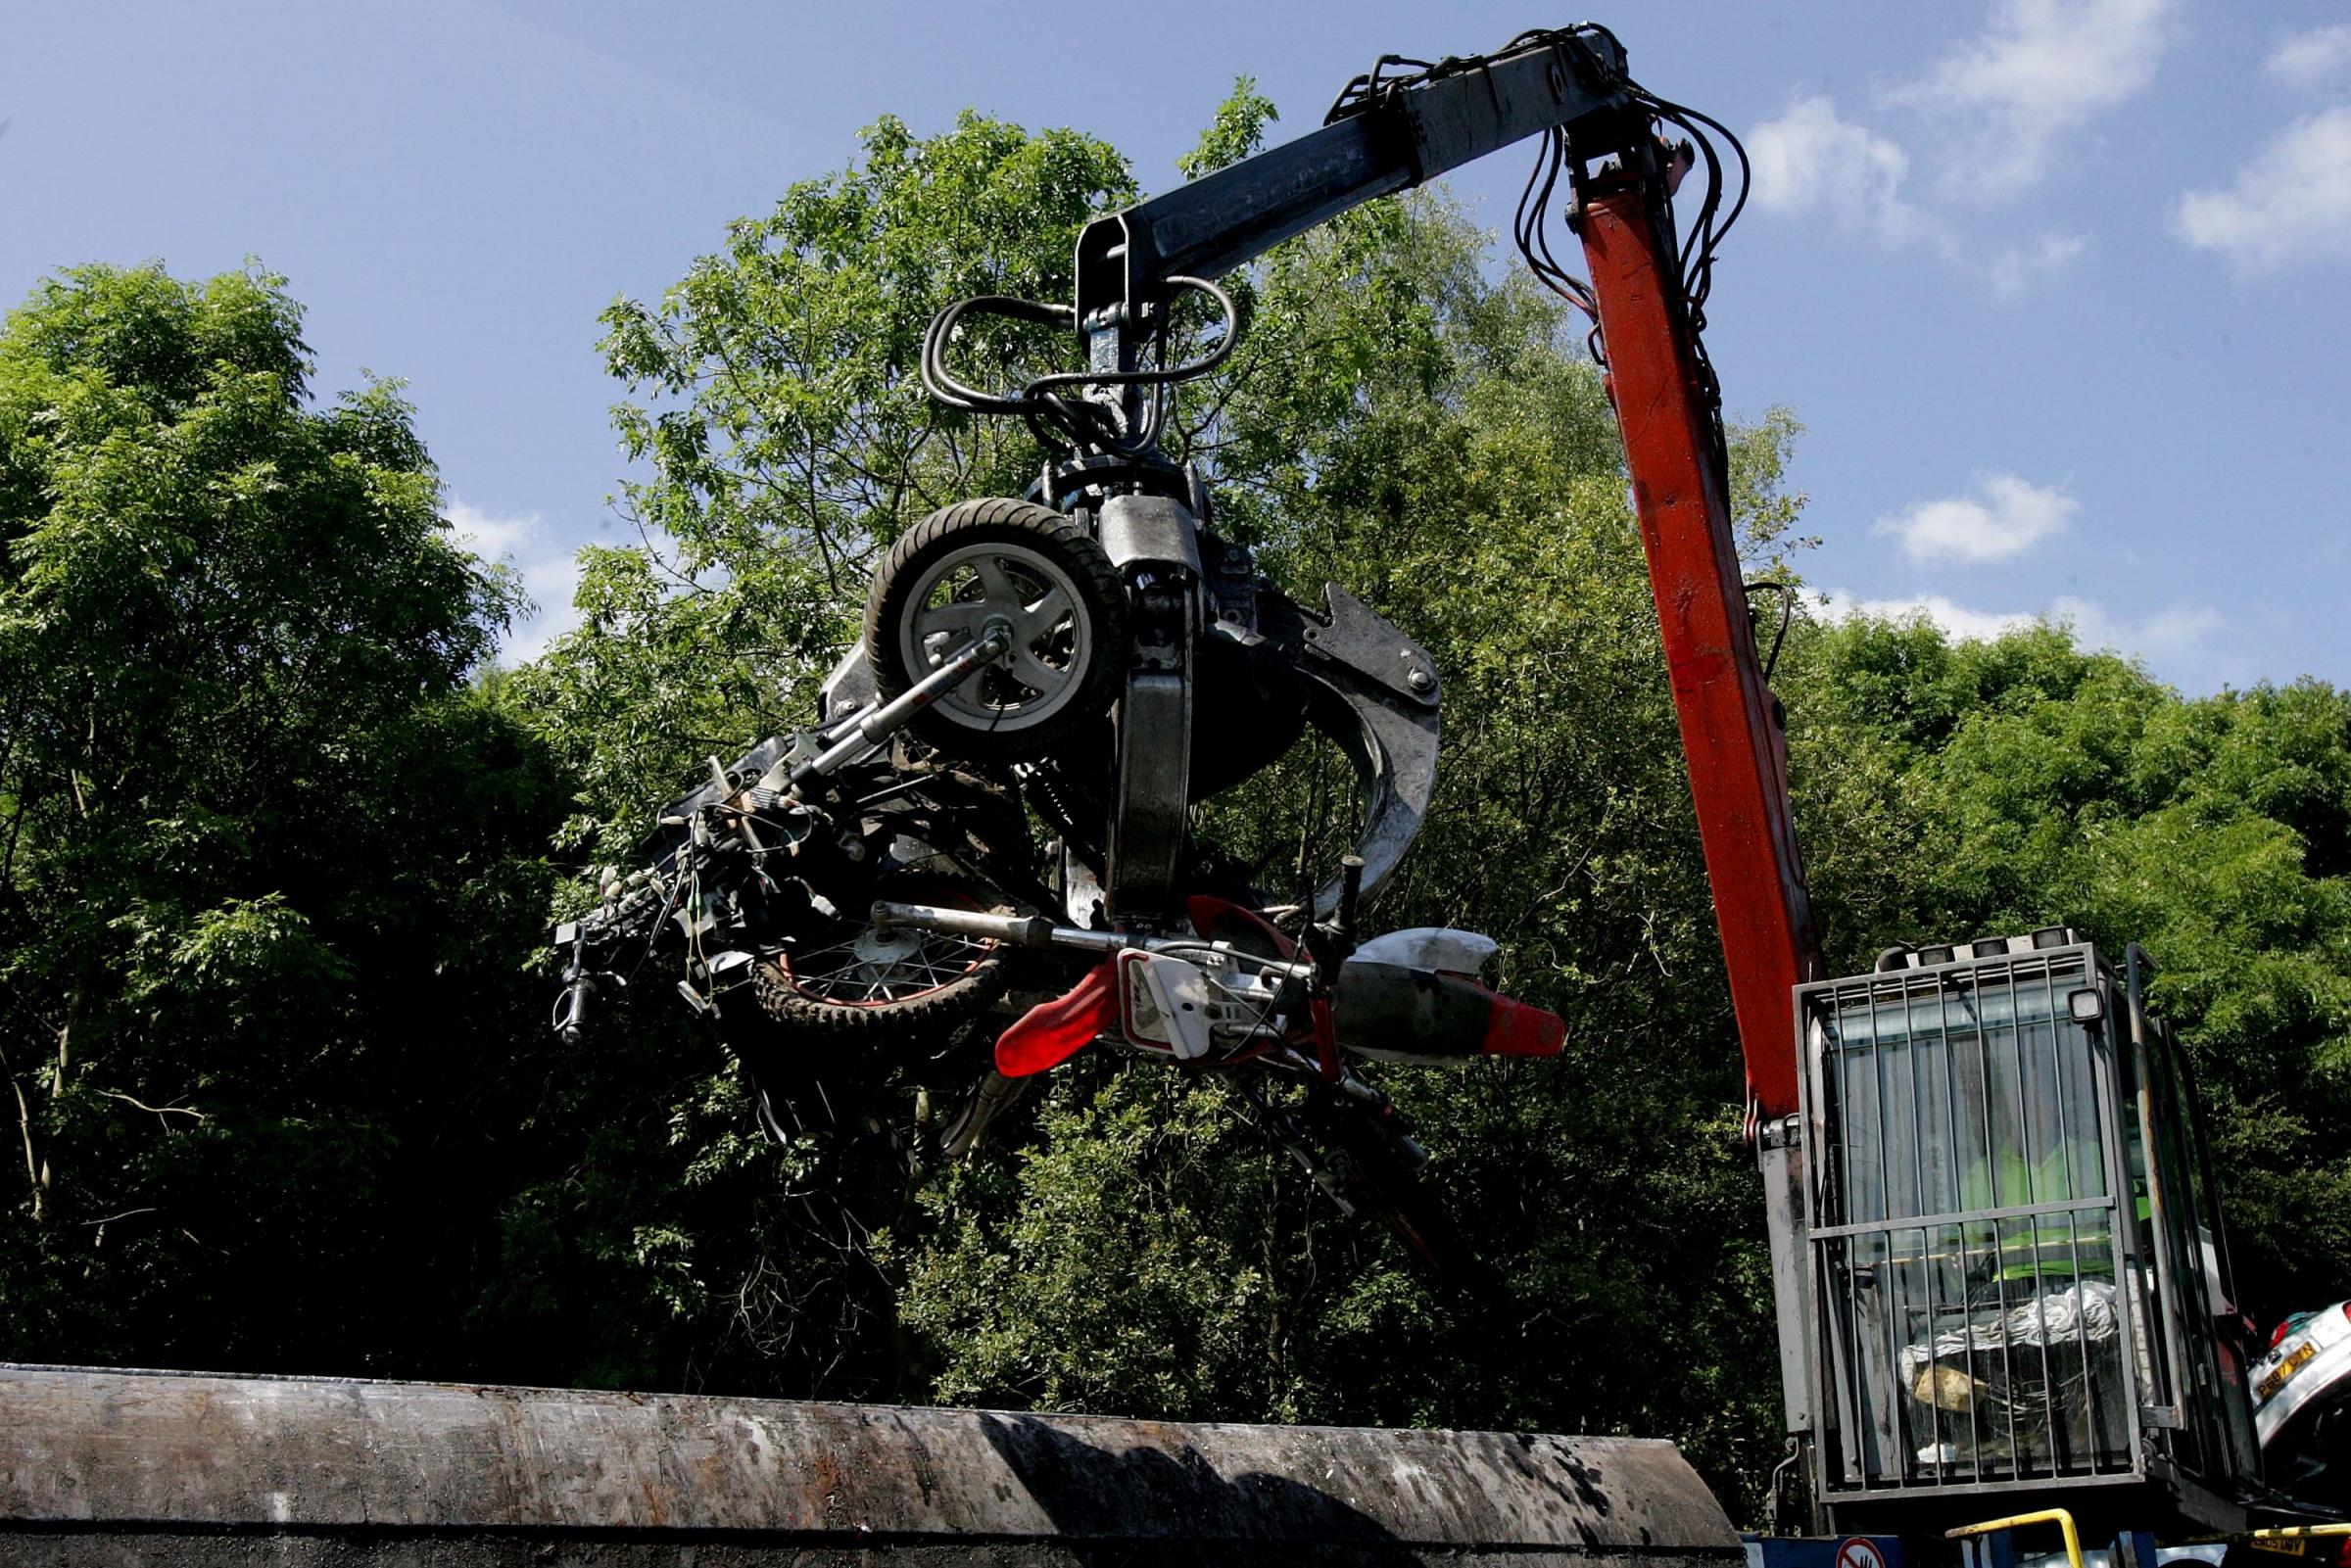 Police will use the crusher in their fight against illegal off-road bike riding